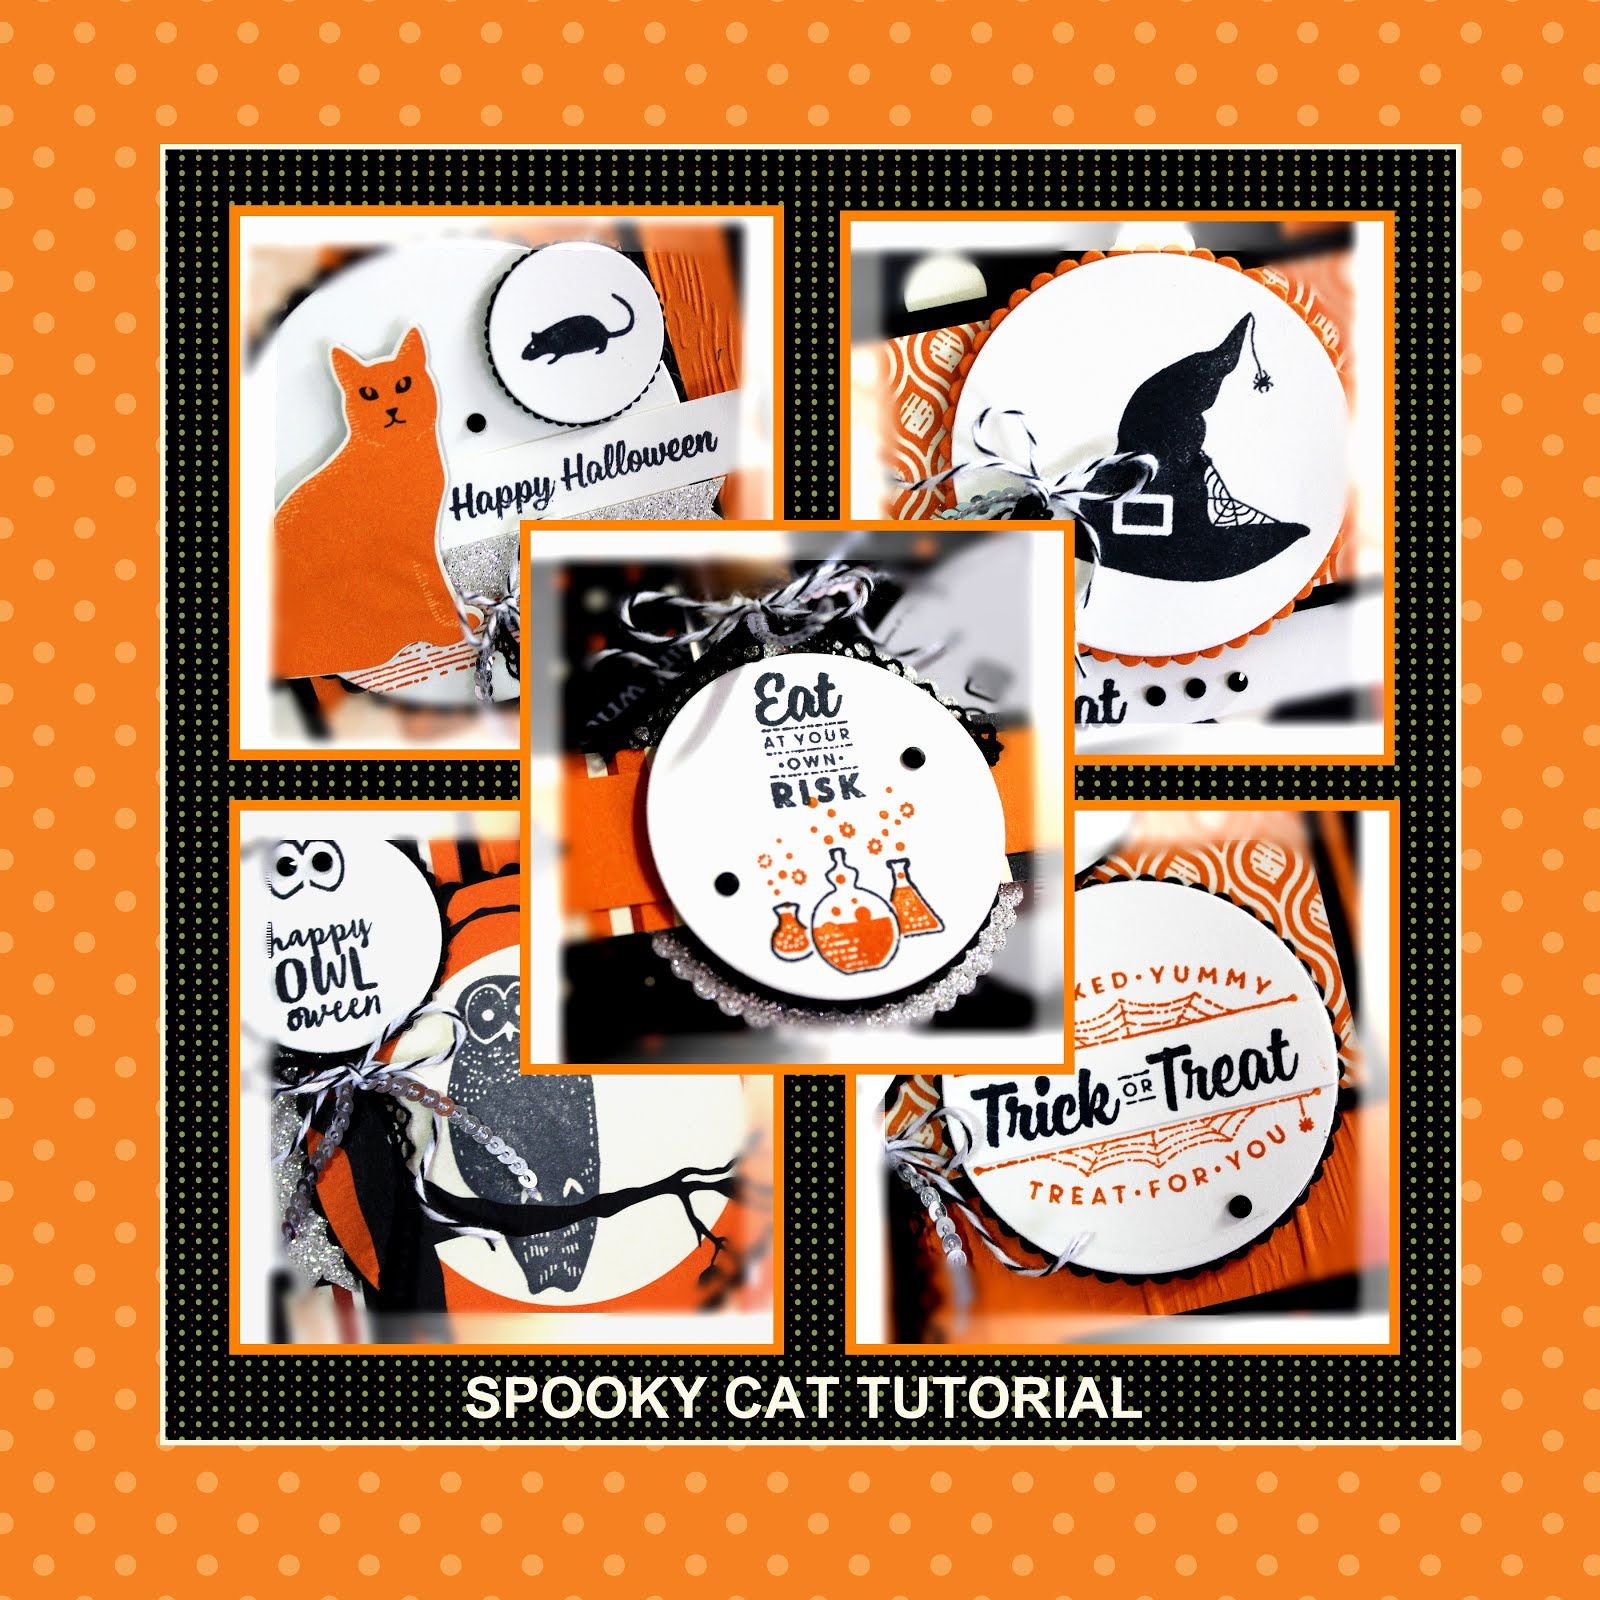 September 2017 Spooky Cat Tutorial